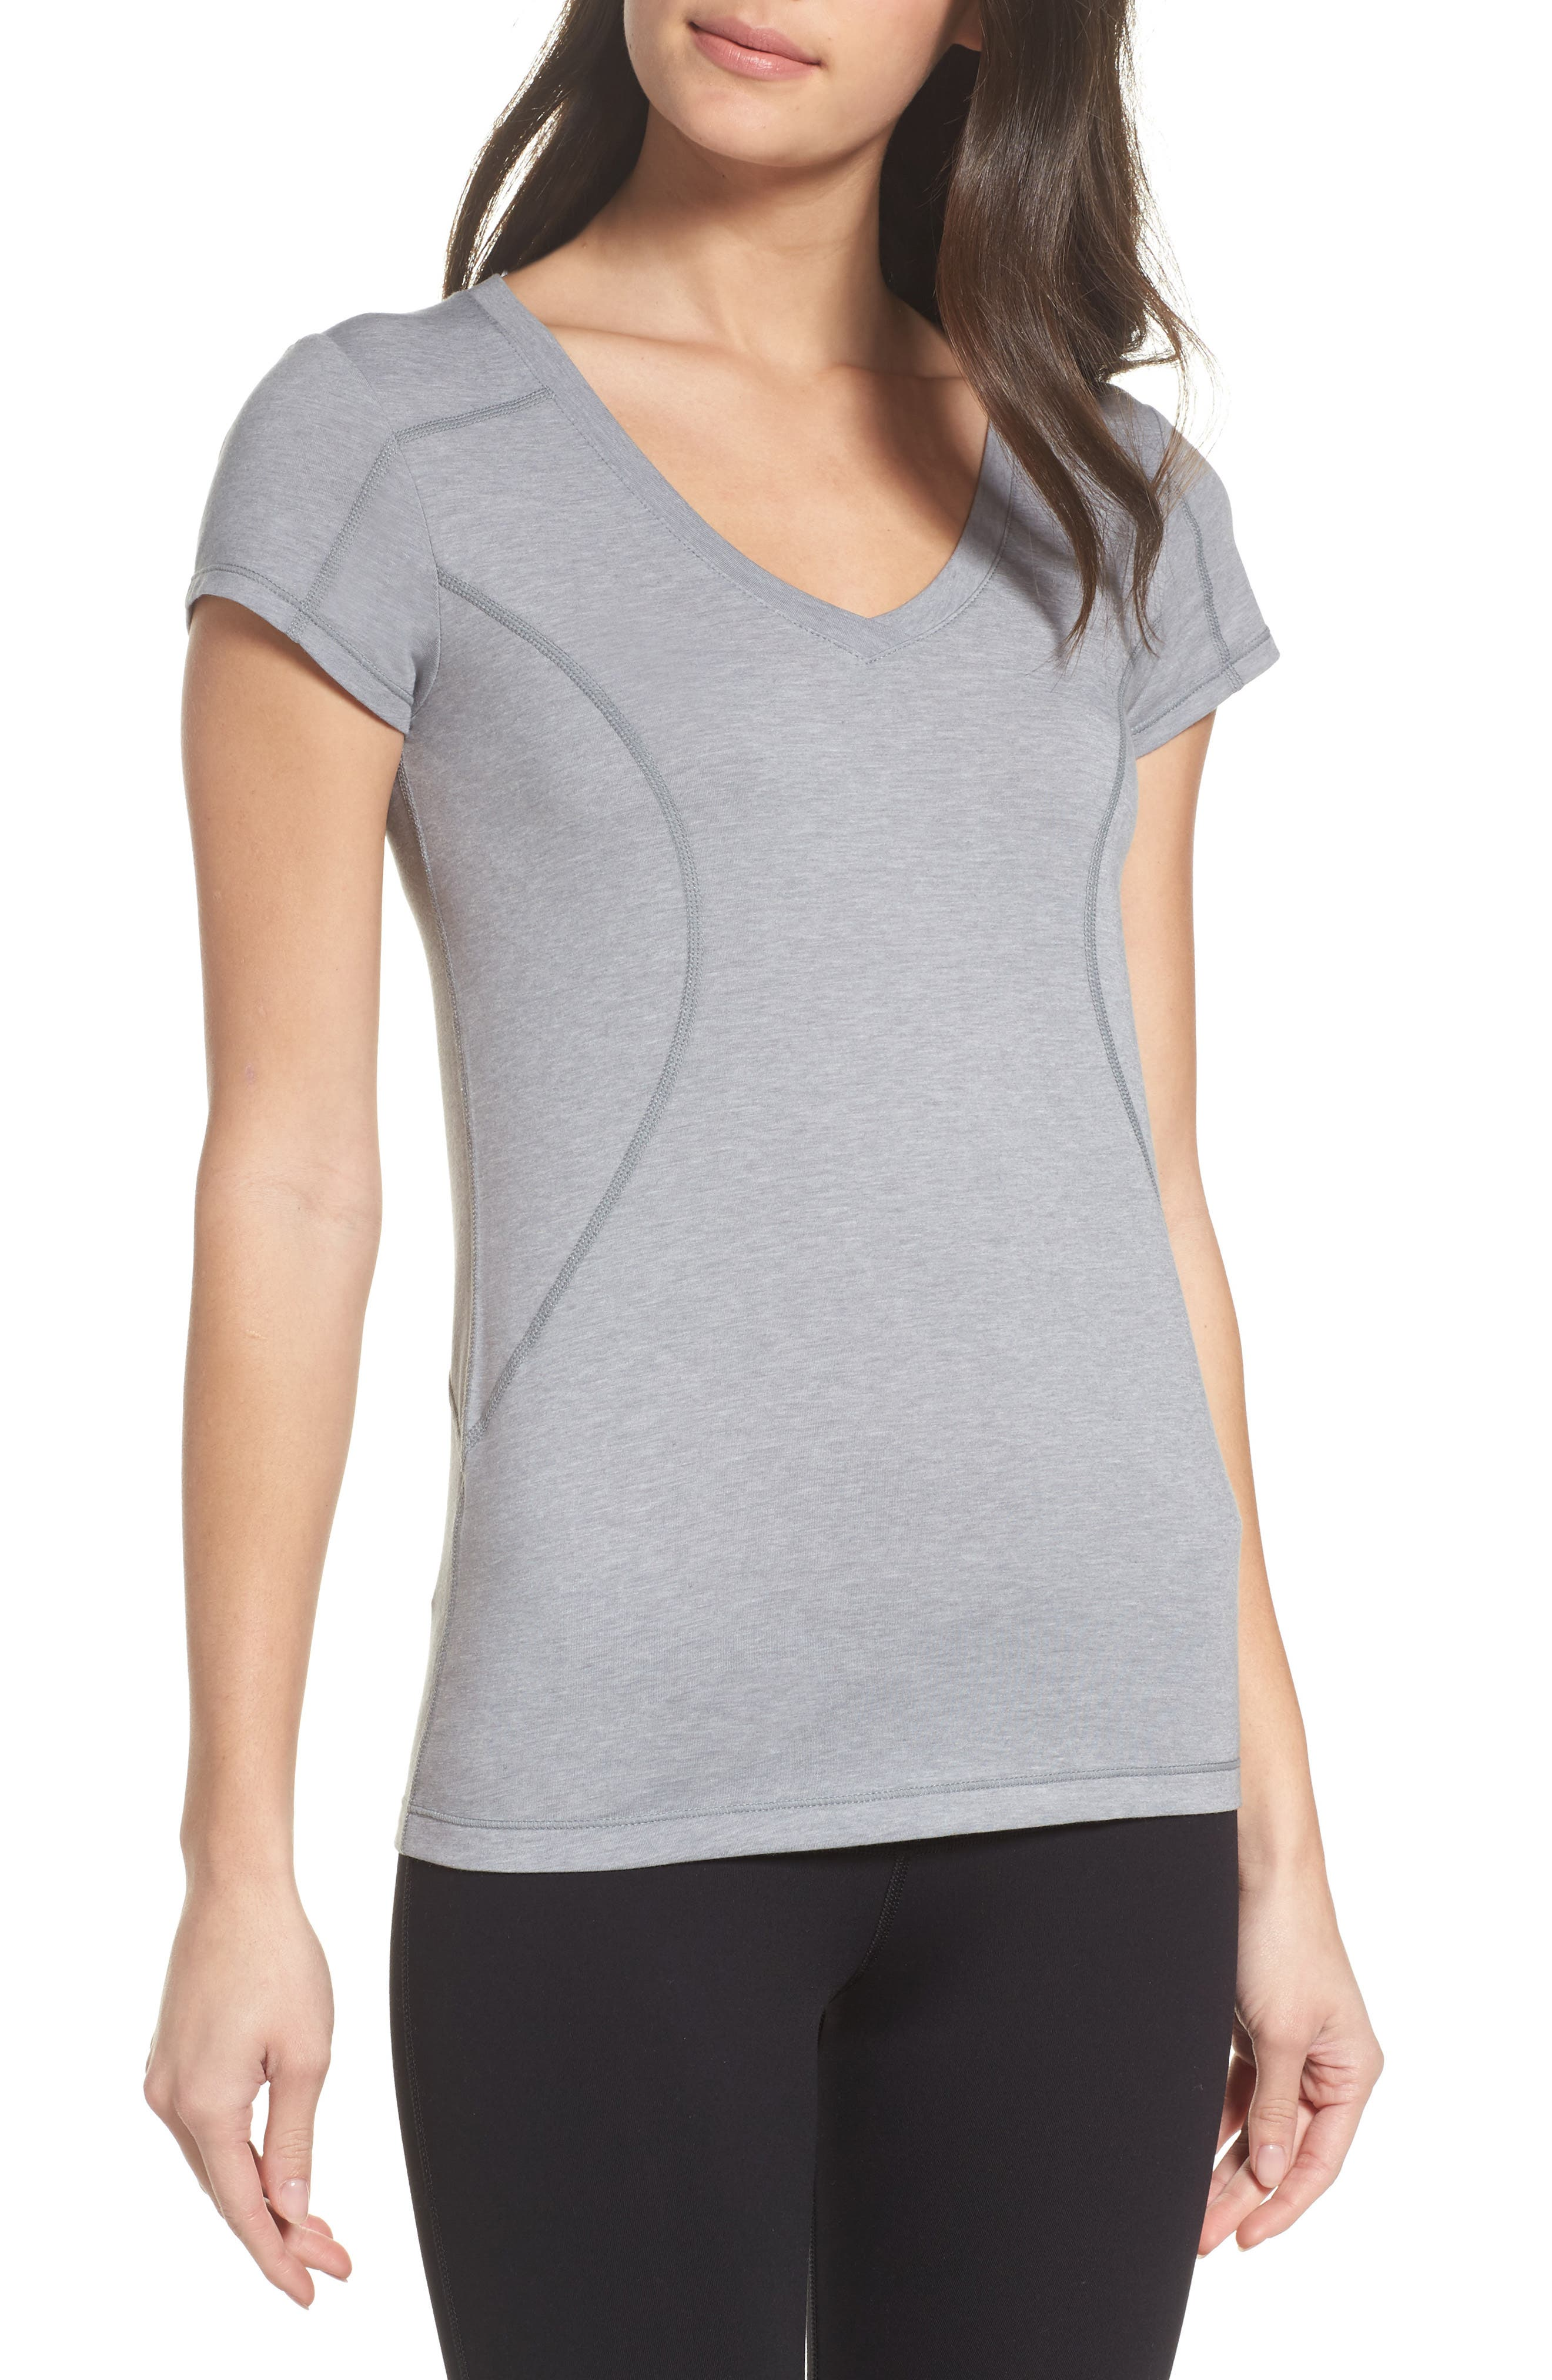 Z Tee,                         Main,                         color, 031